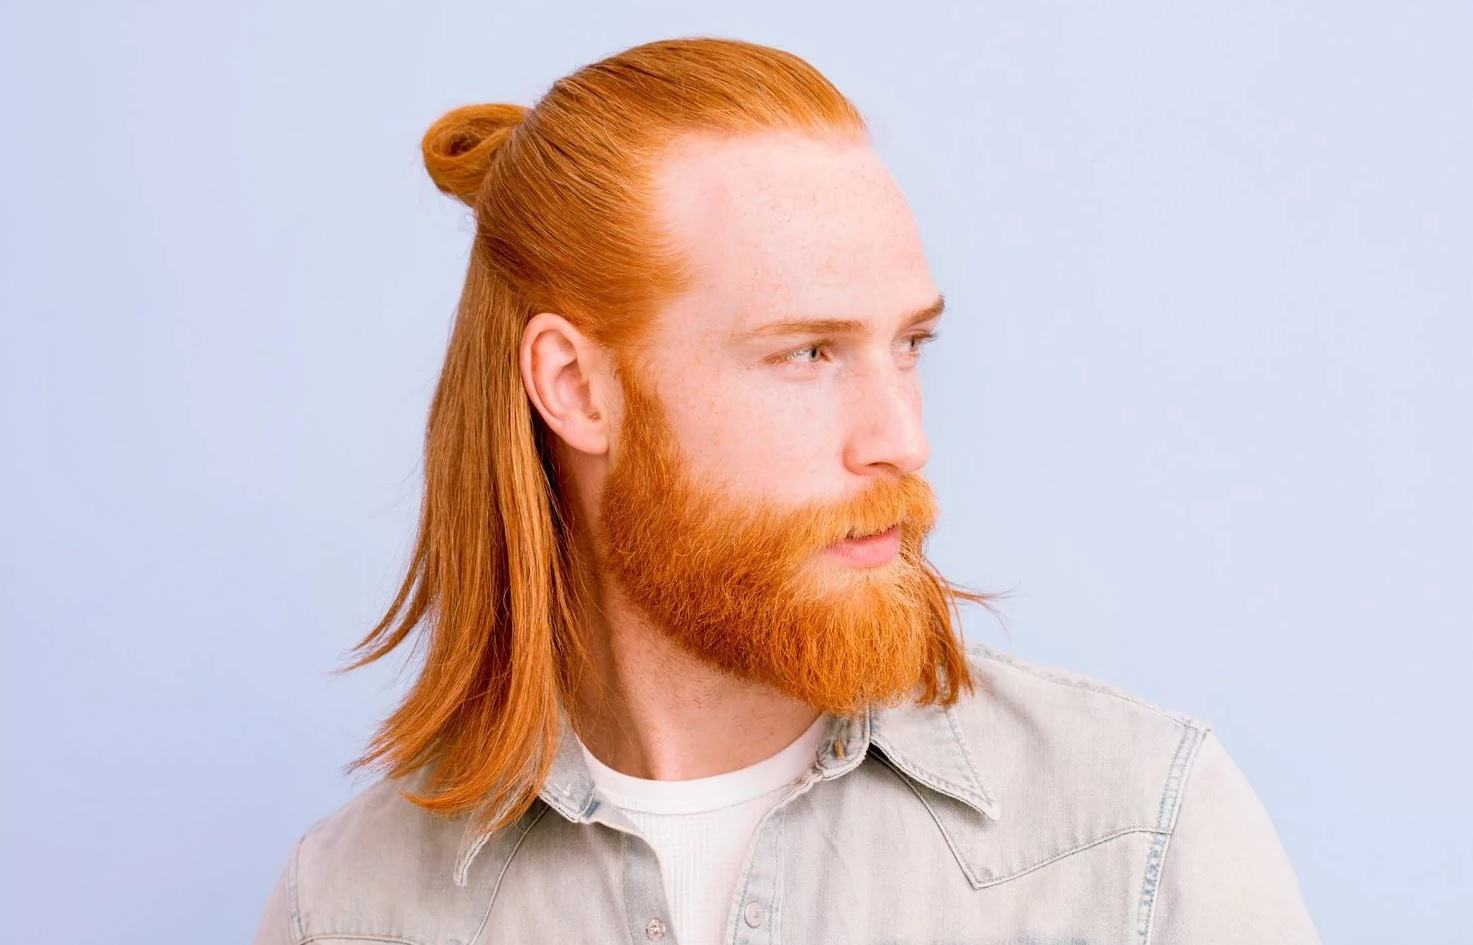 How To Grow A Man Bun 6 Steps To Rocking The Hairdo Of The Year